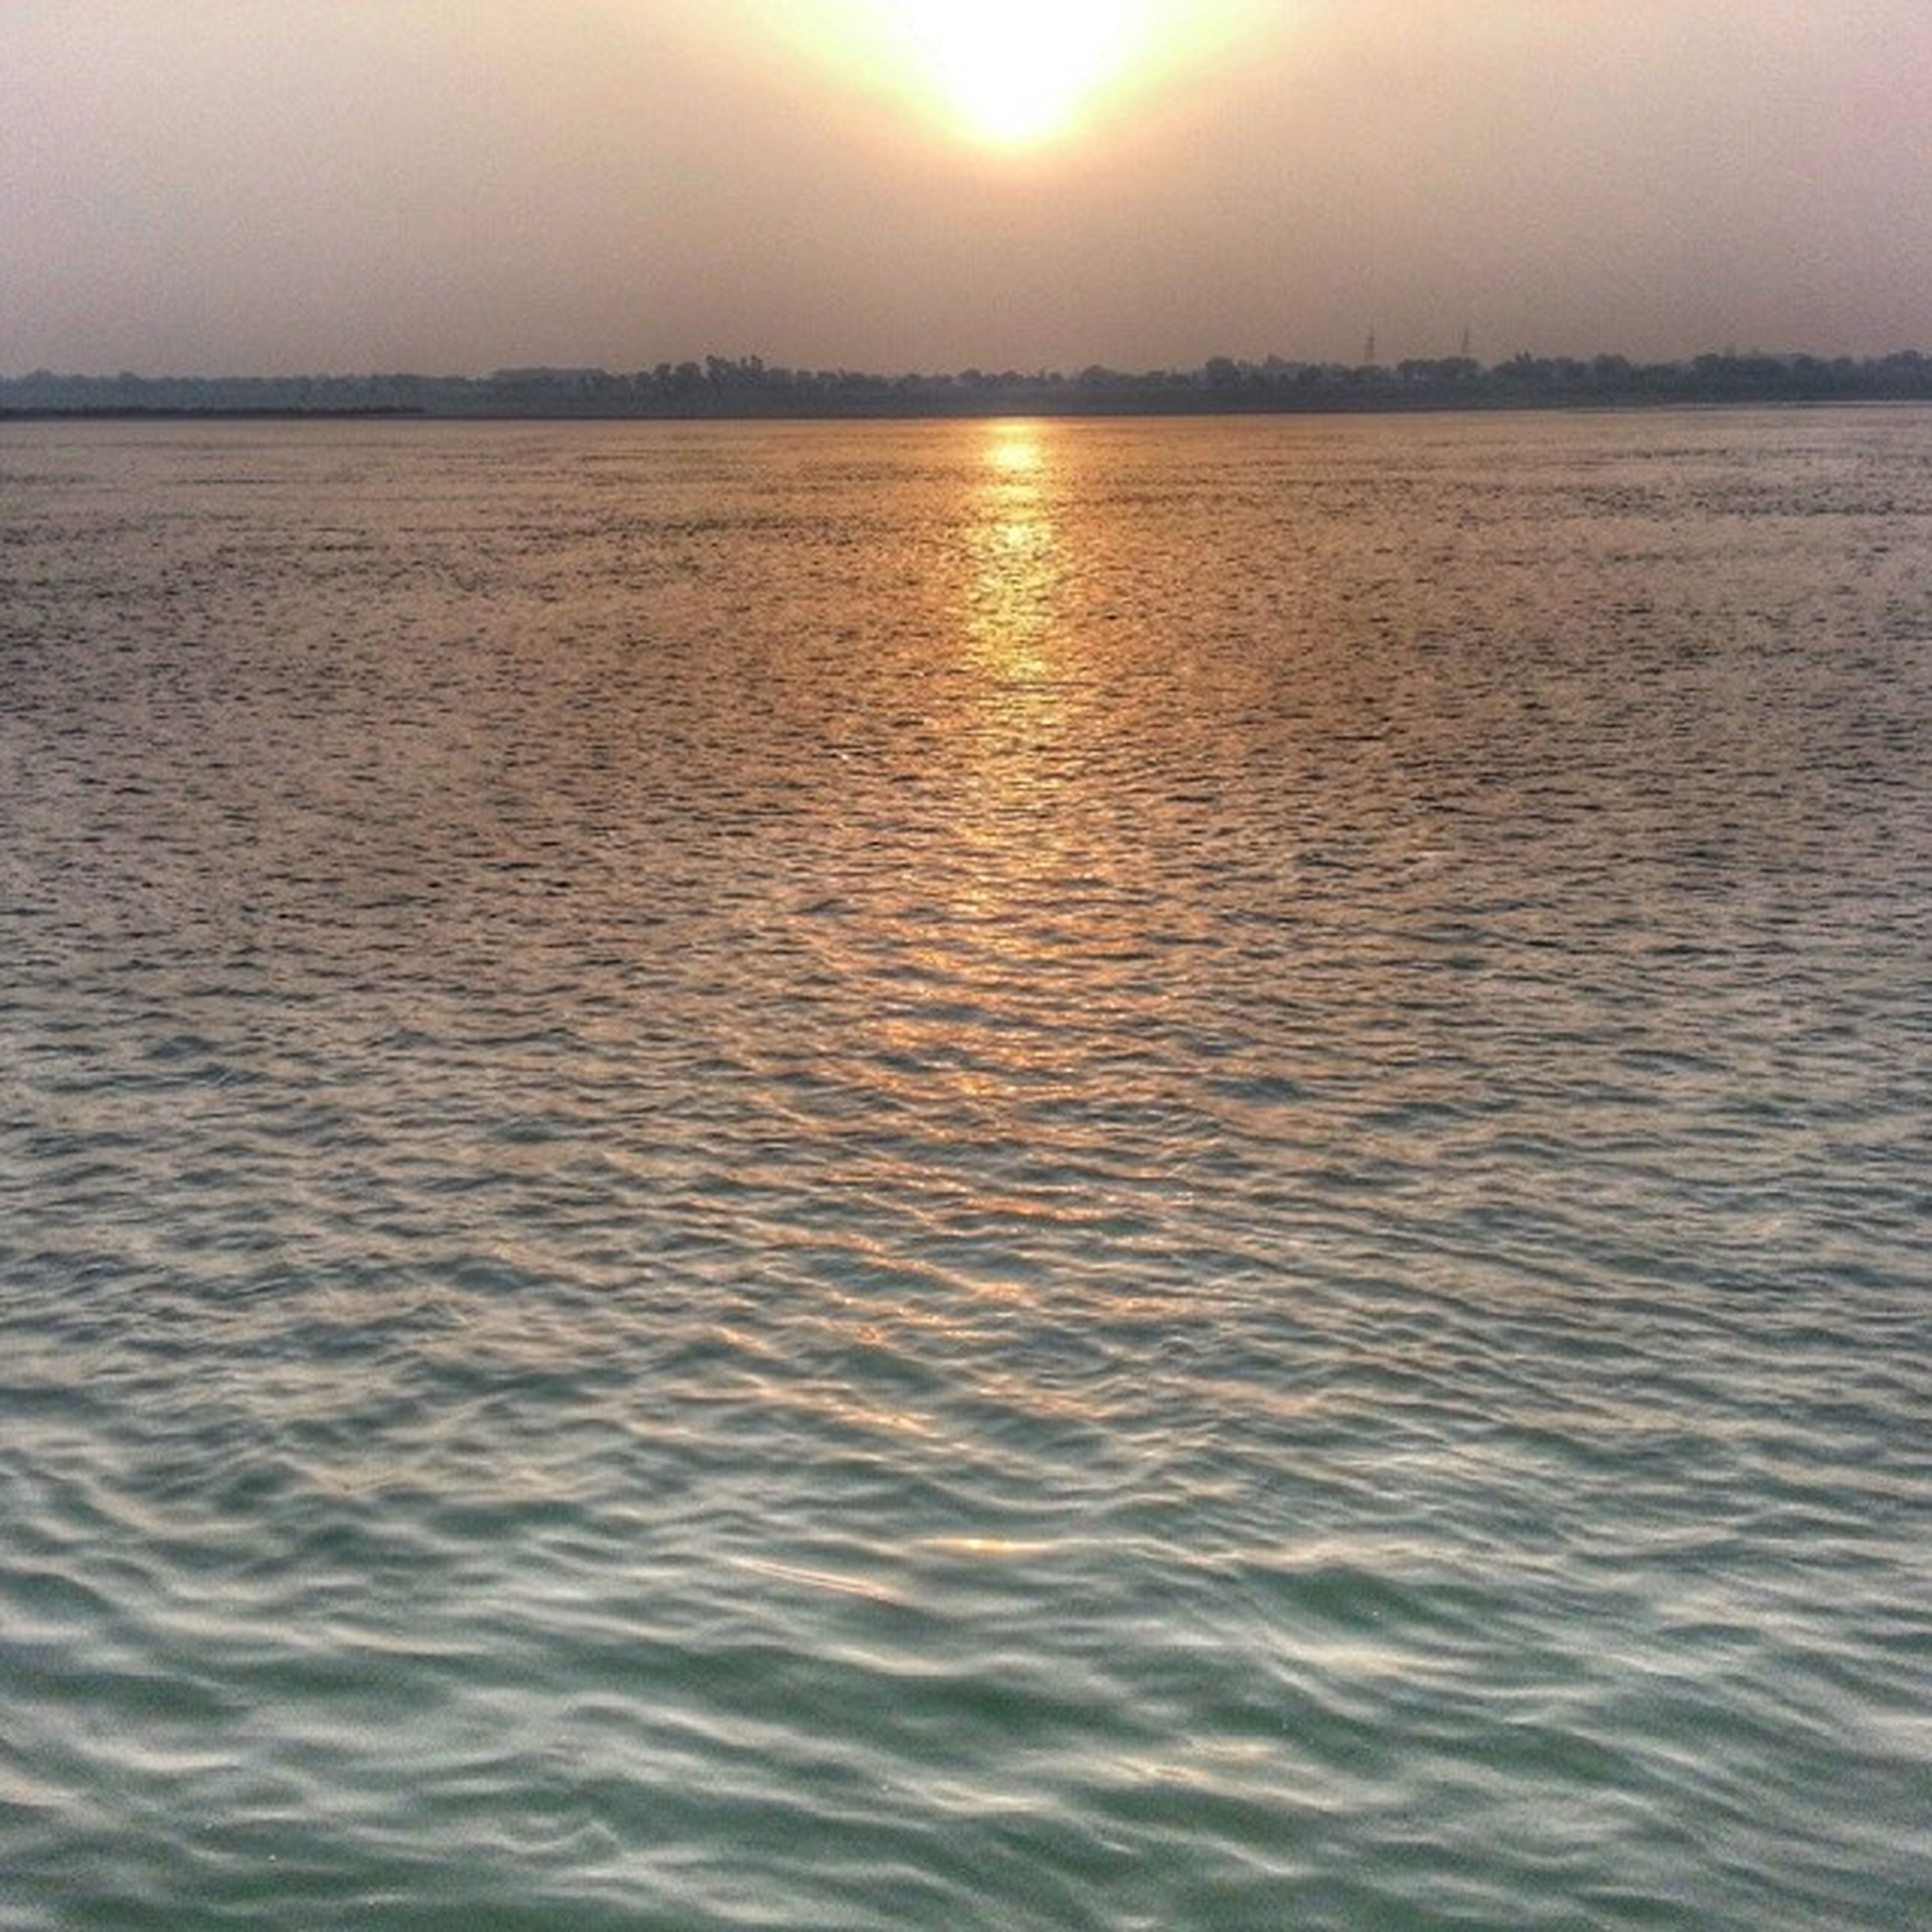 water, sunset, tranquil scene, sun, tranquility, scenics, beauty in nature, waterfront, reflection, rippled, nature, lake, idyllic, sunlight, sky, outdoors, no people, sea, river, non-urban scene